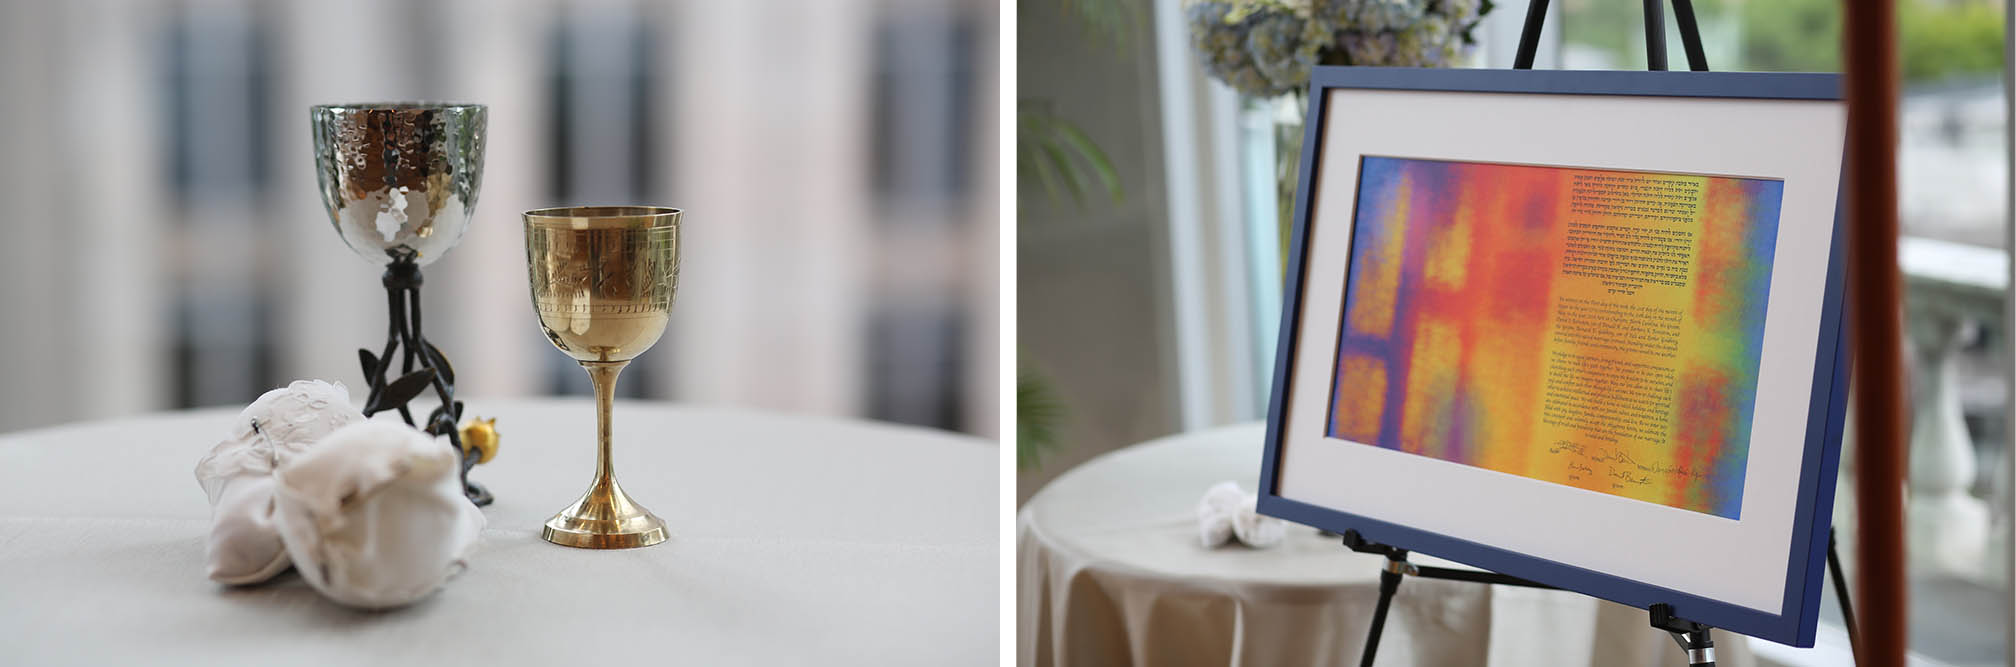 the glasses, wine goblets and the beautiful Ketubah